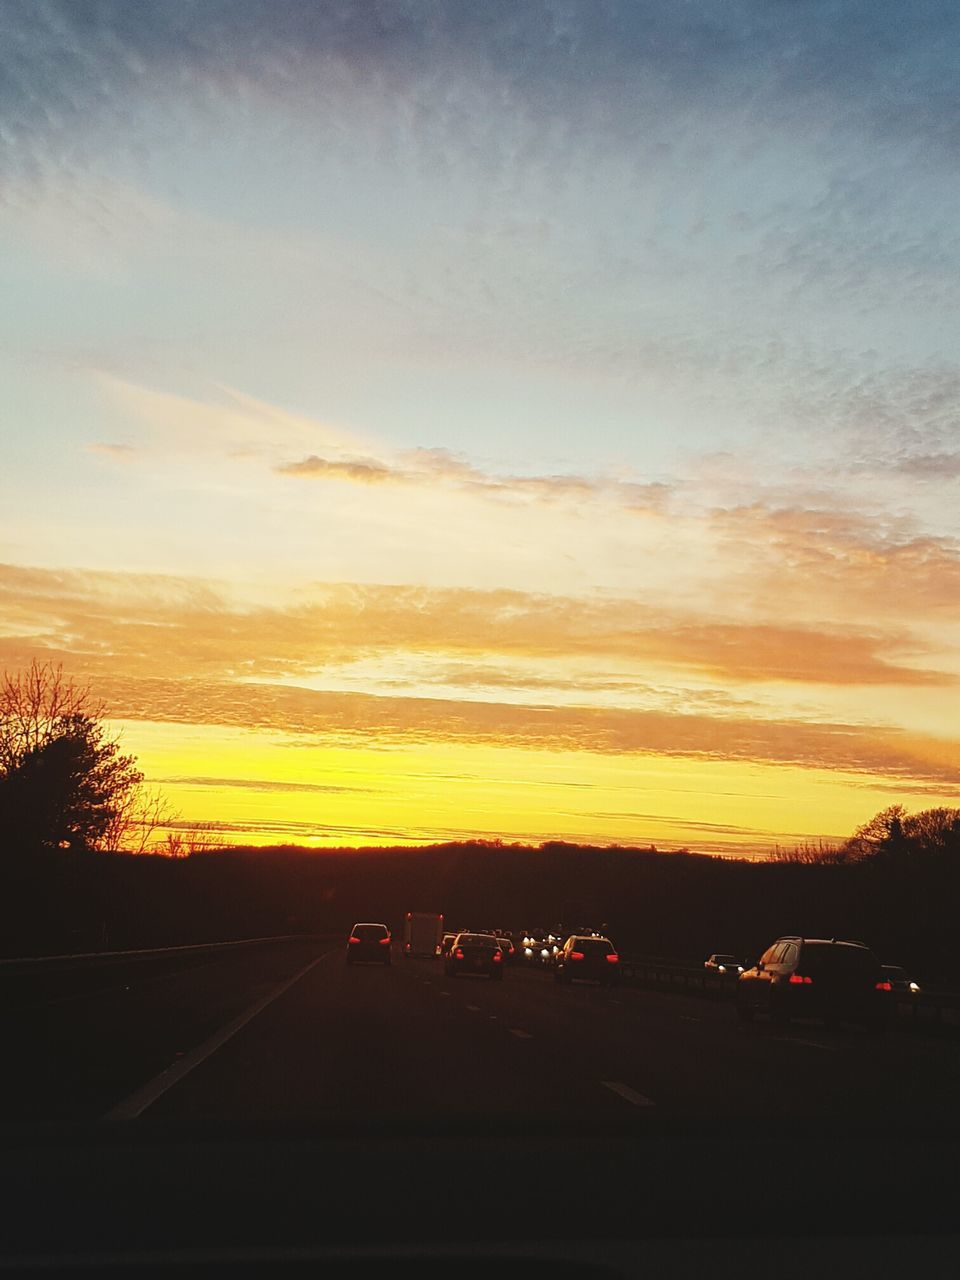 sunset, car, transportation, road, sky, land vehicle, silhouette, scenics, orange color, no people, the way forward, mode of transport, nature, beauty in nature, car point of view, cloud - sky, landscape, outdoors, day